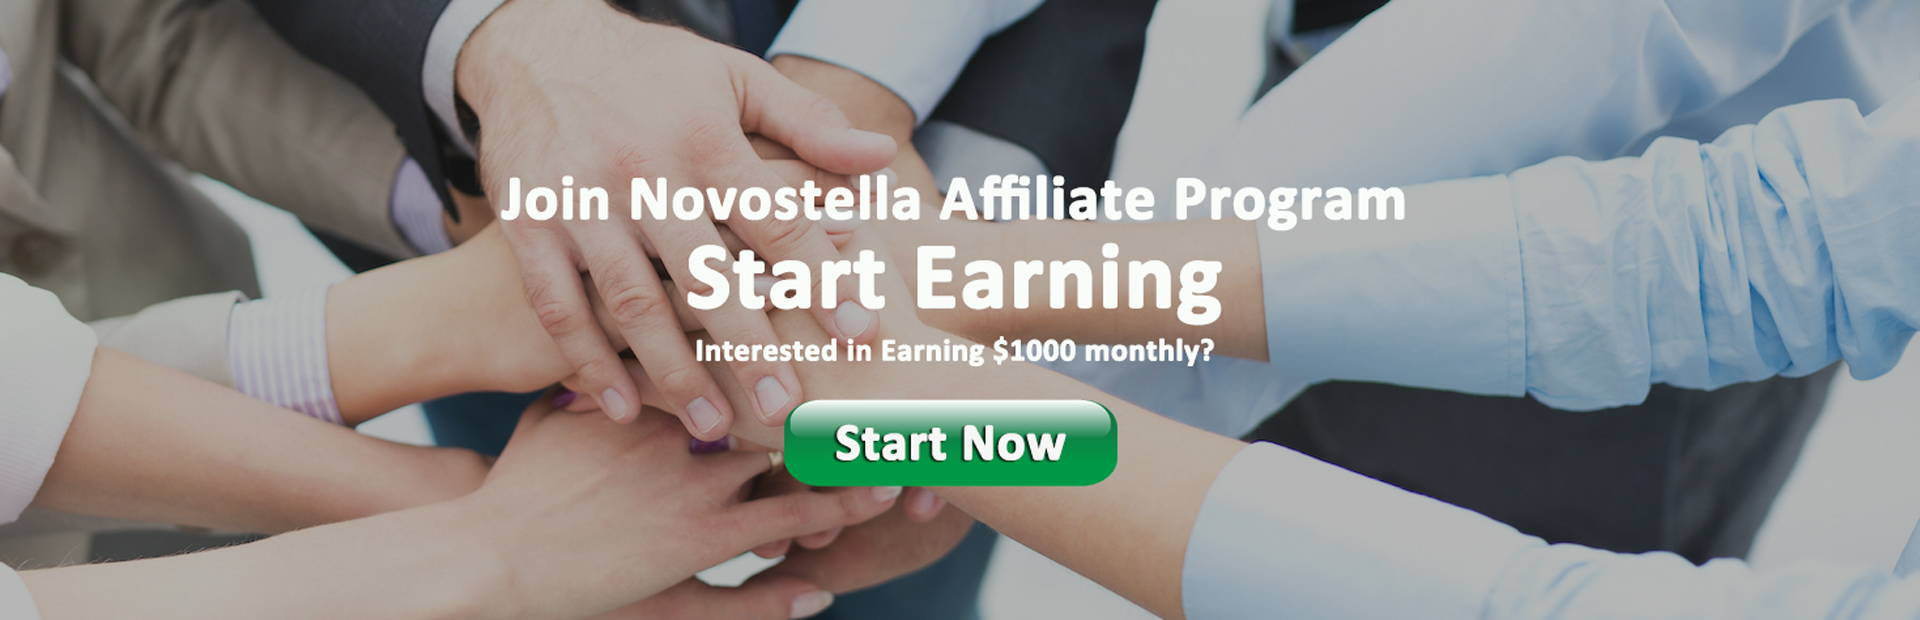 novostella-affiliate-program